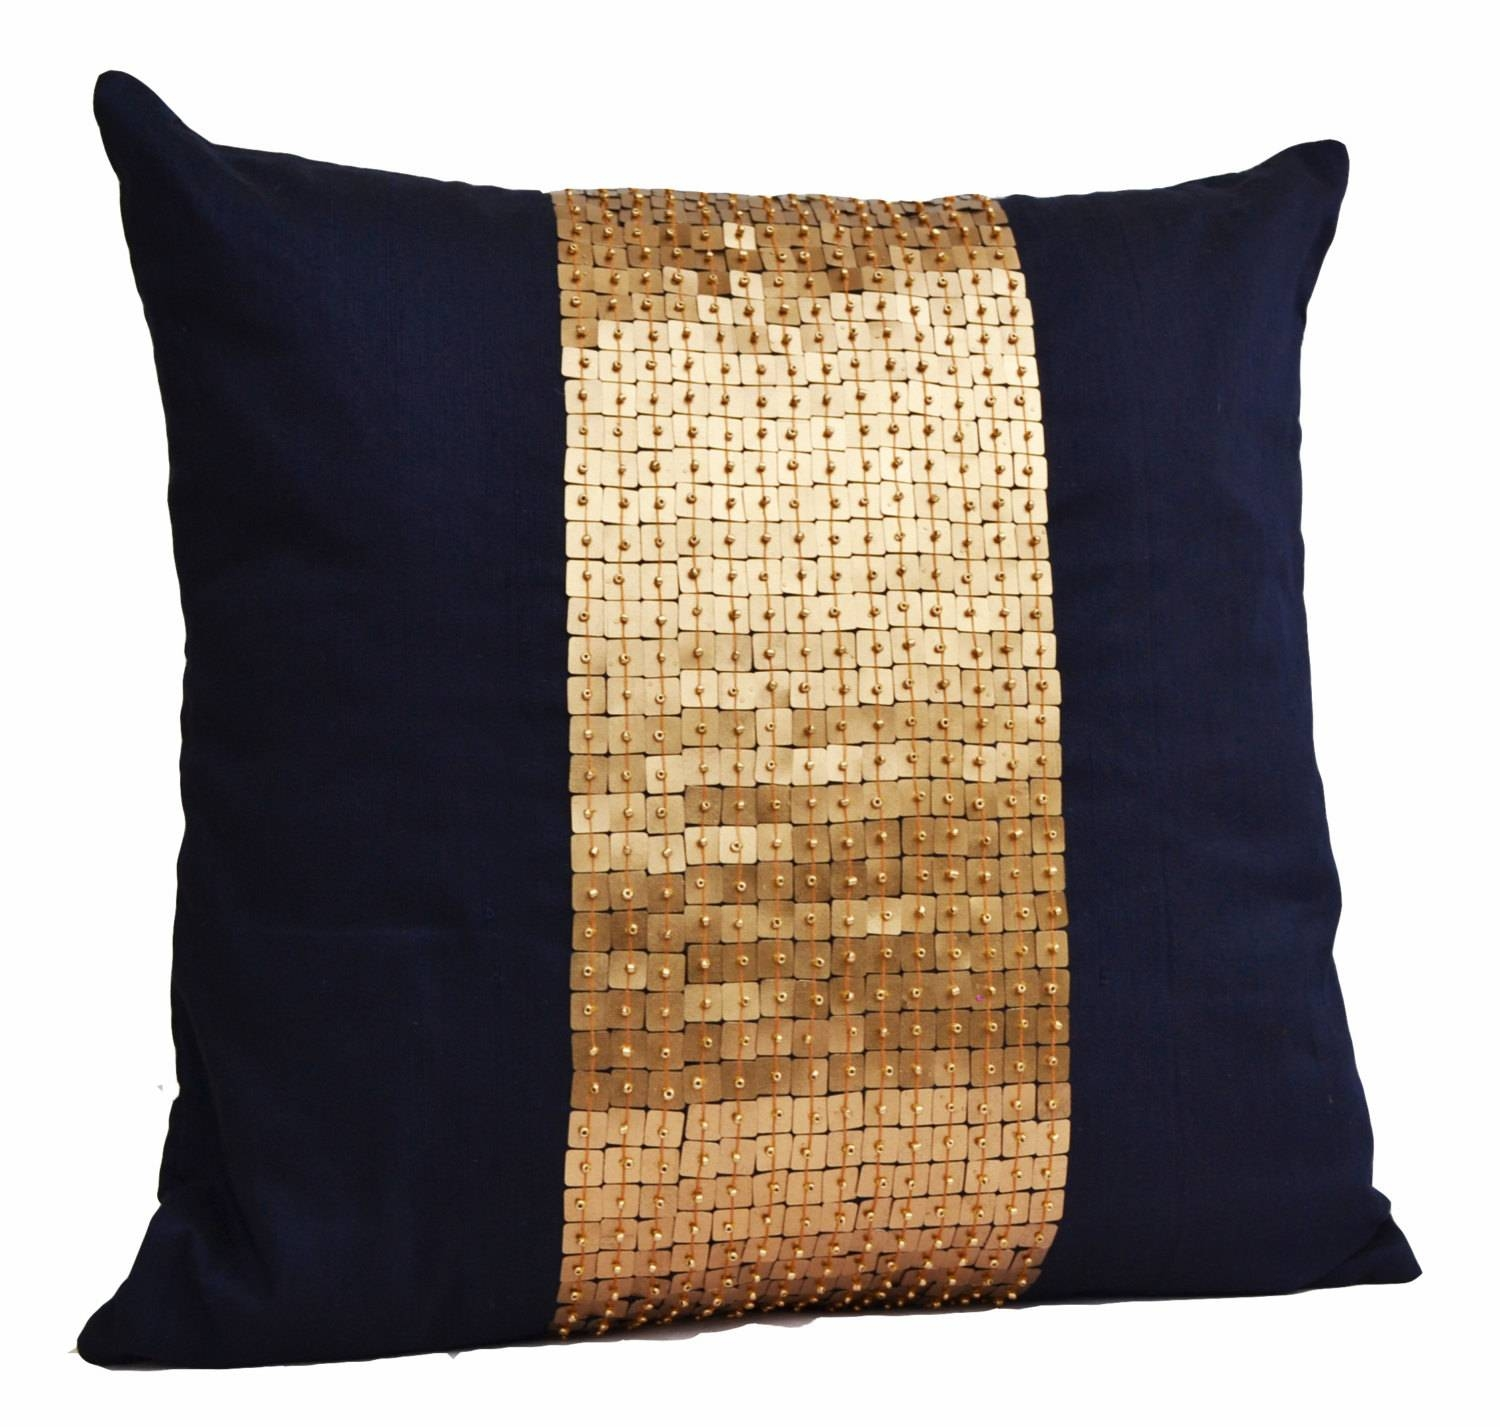 Throw Pillows Navy Blue Gold Color Block In Silk Sequin Bead throughout Gold Sofa Pillows (Image 14 of 15)